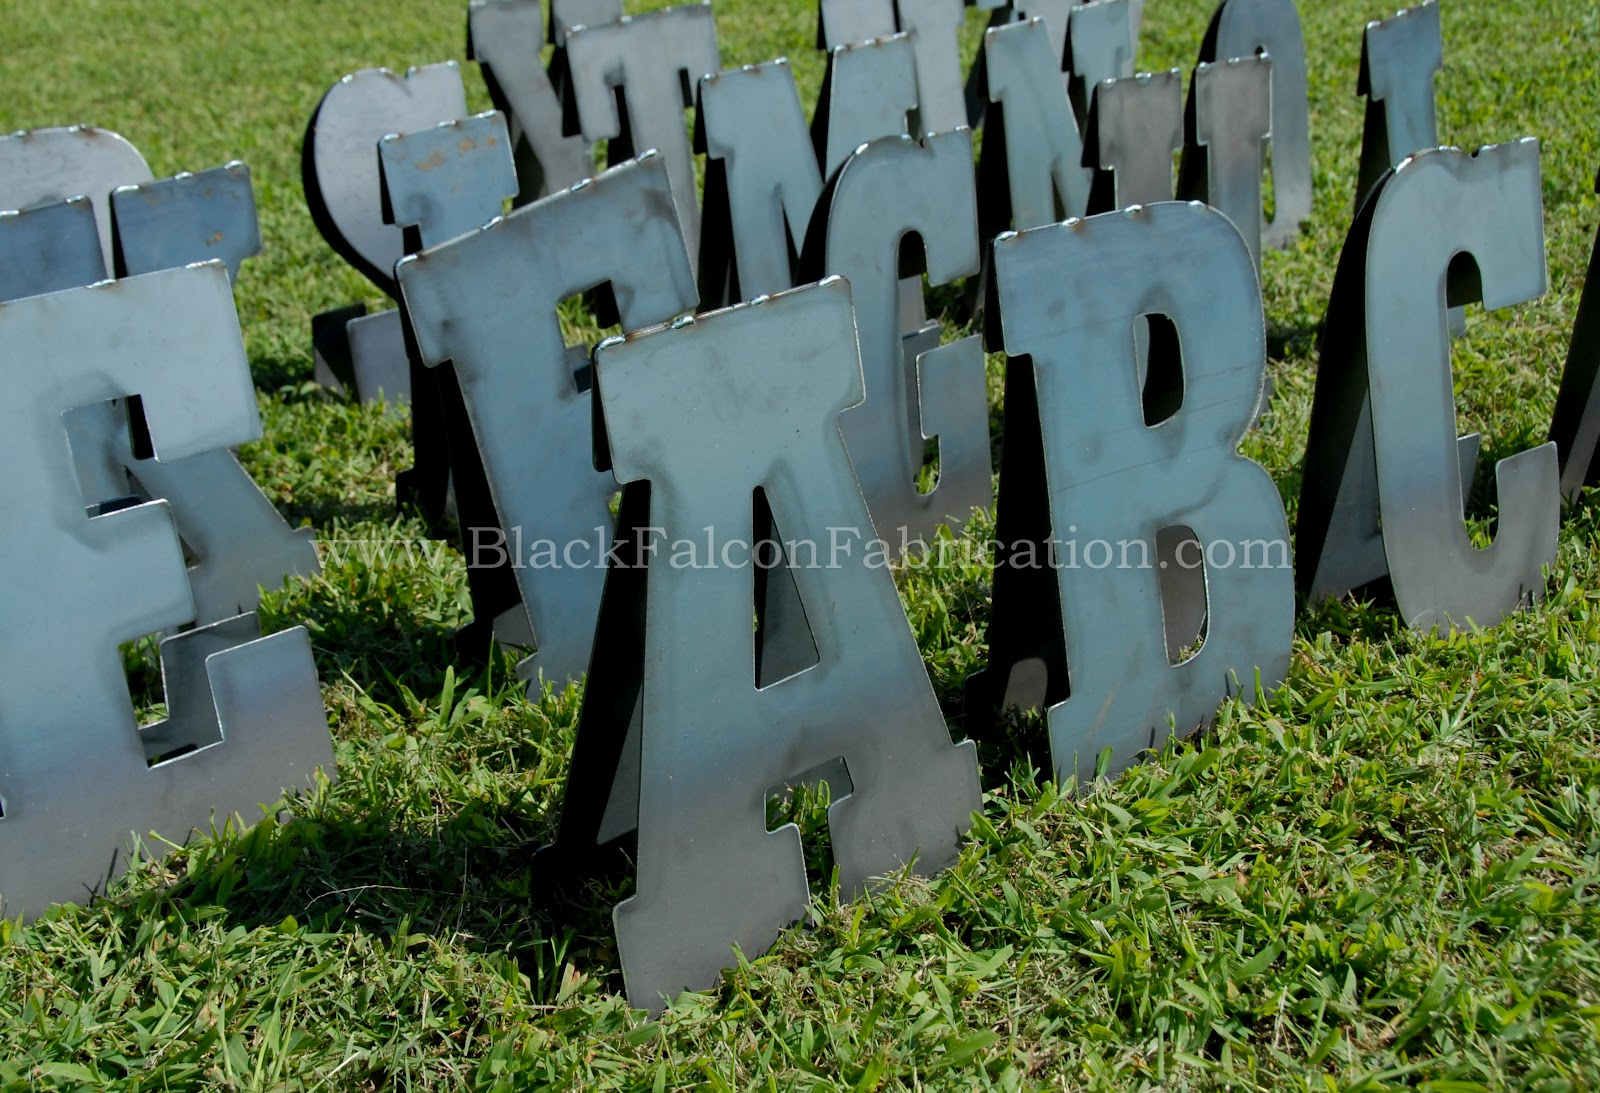 Black Falcon Fabrication: Free Standing Letters